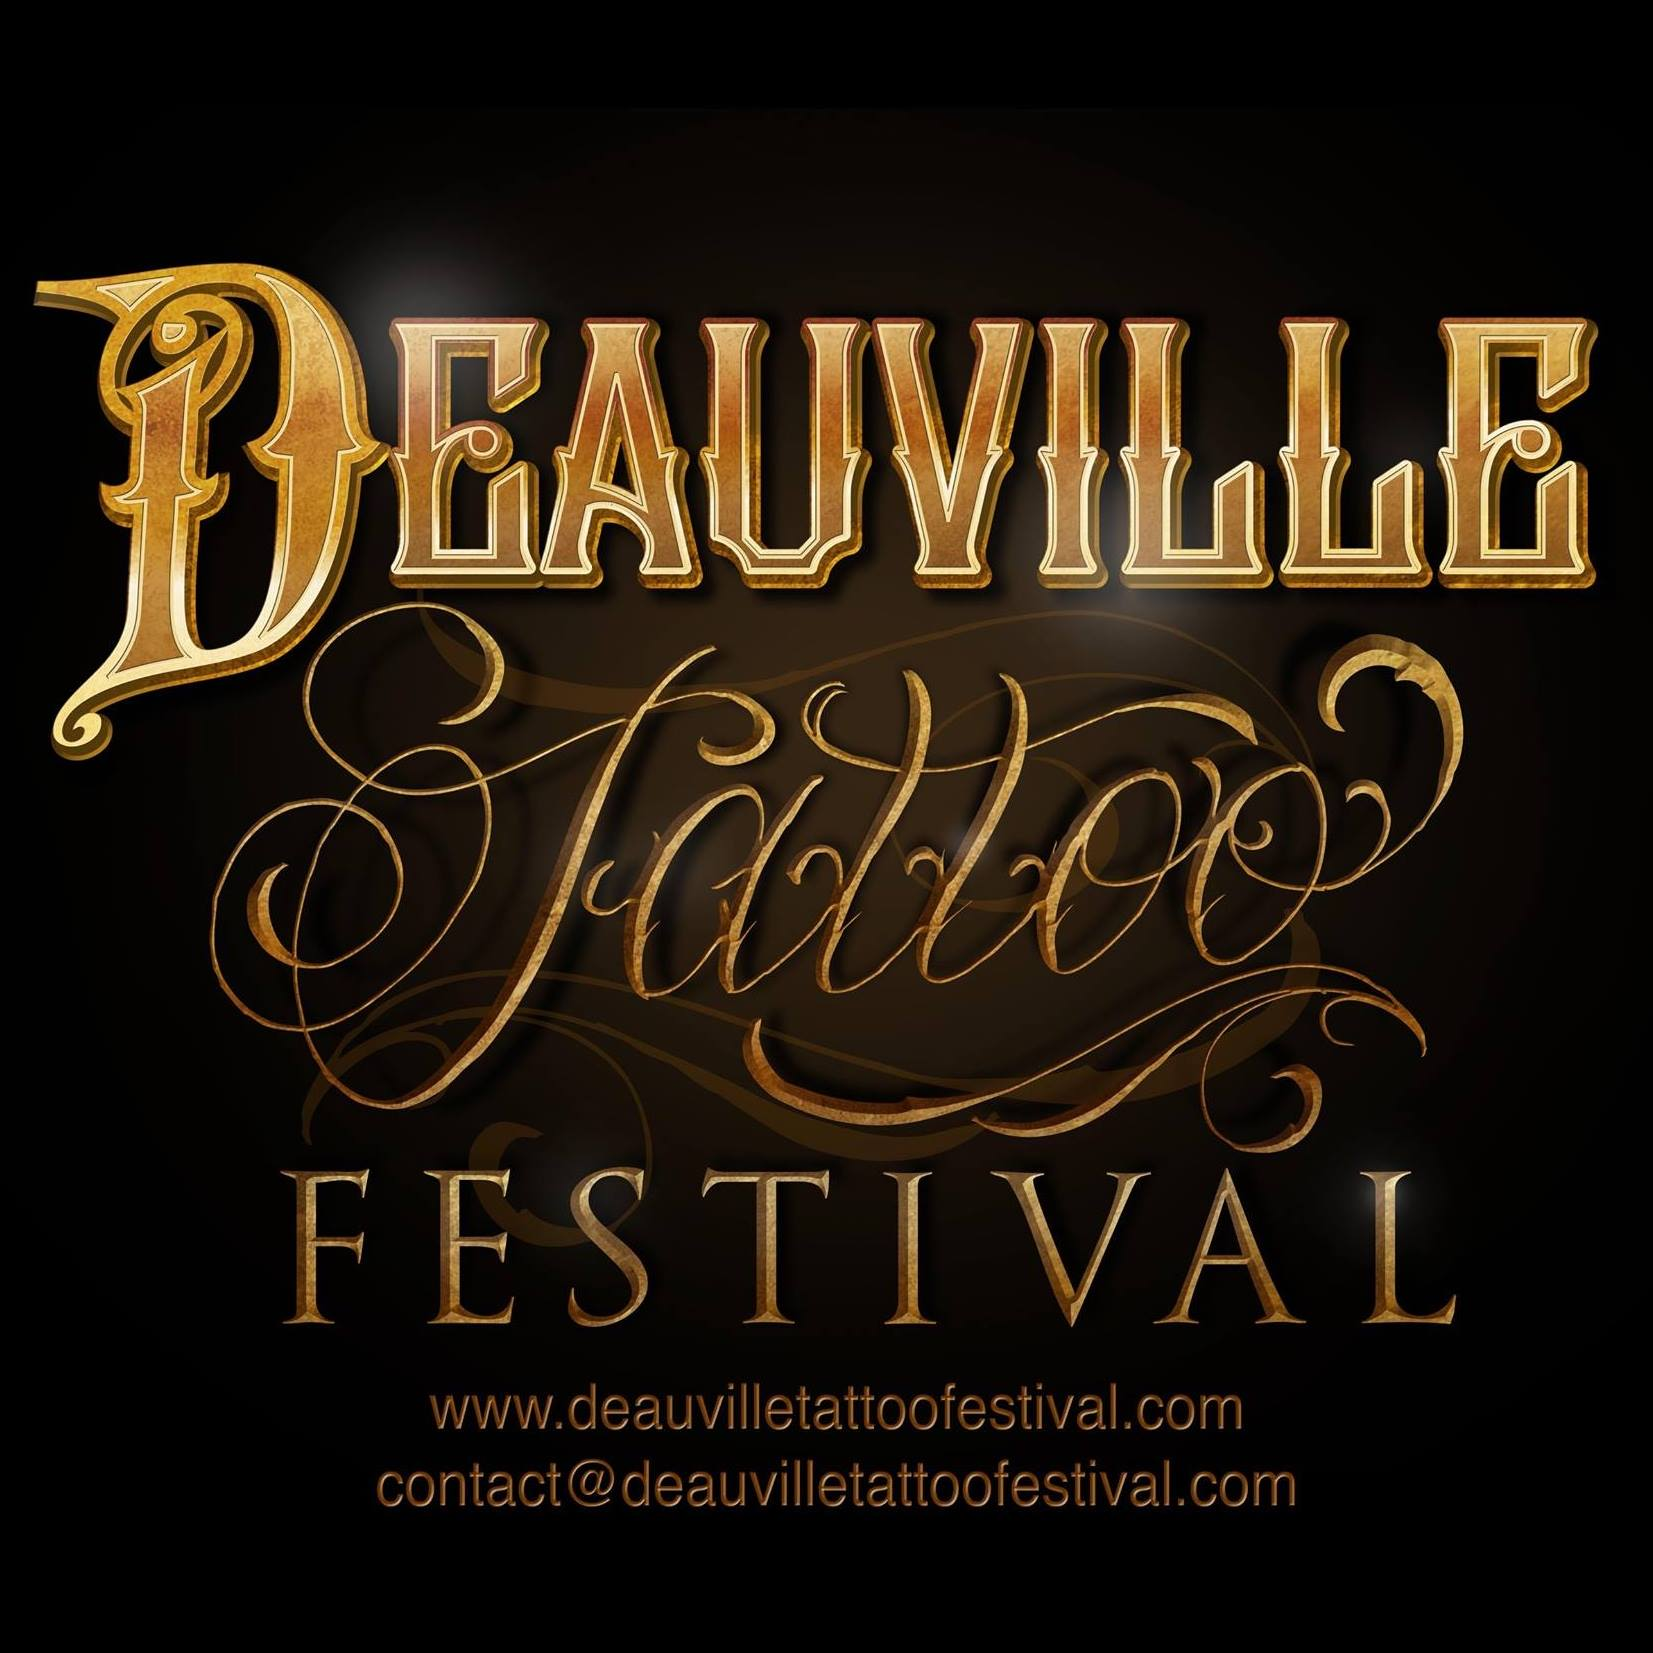 deauville tattoo convention indy artwork artiste tatoueur tattoosit ink inker convention festival tattoo show art body france paris